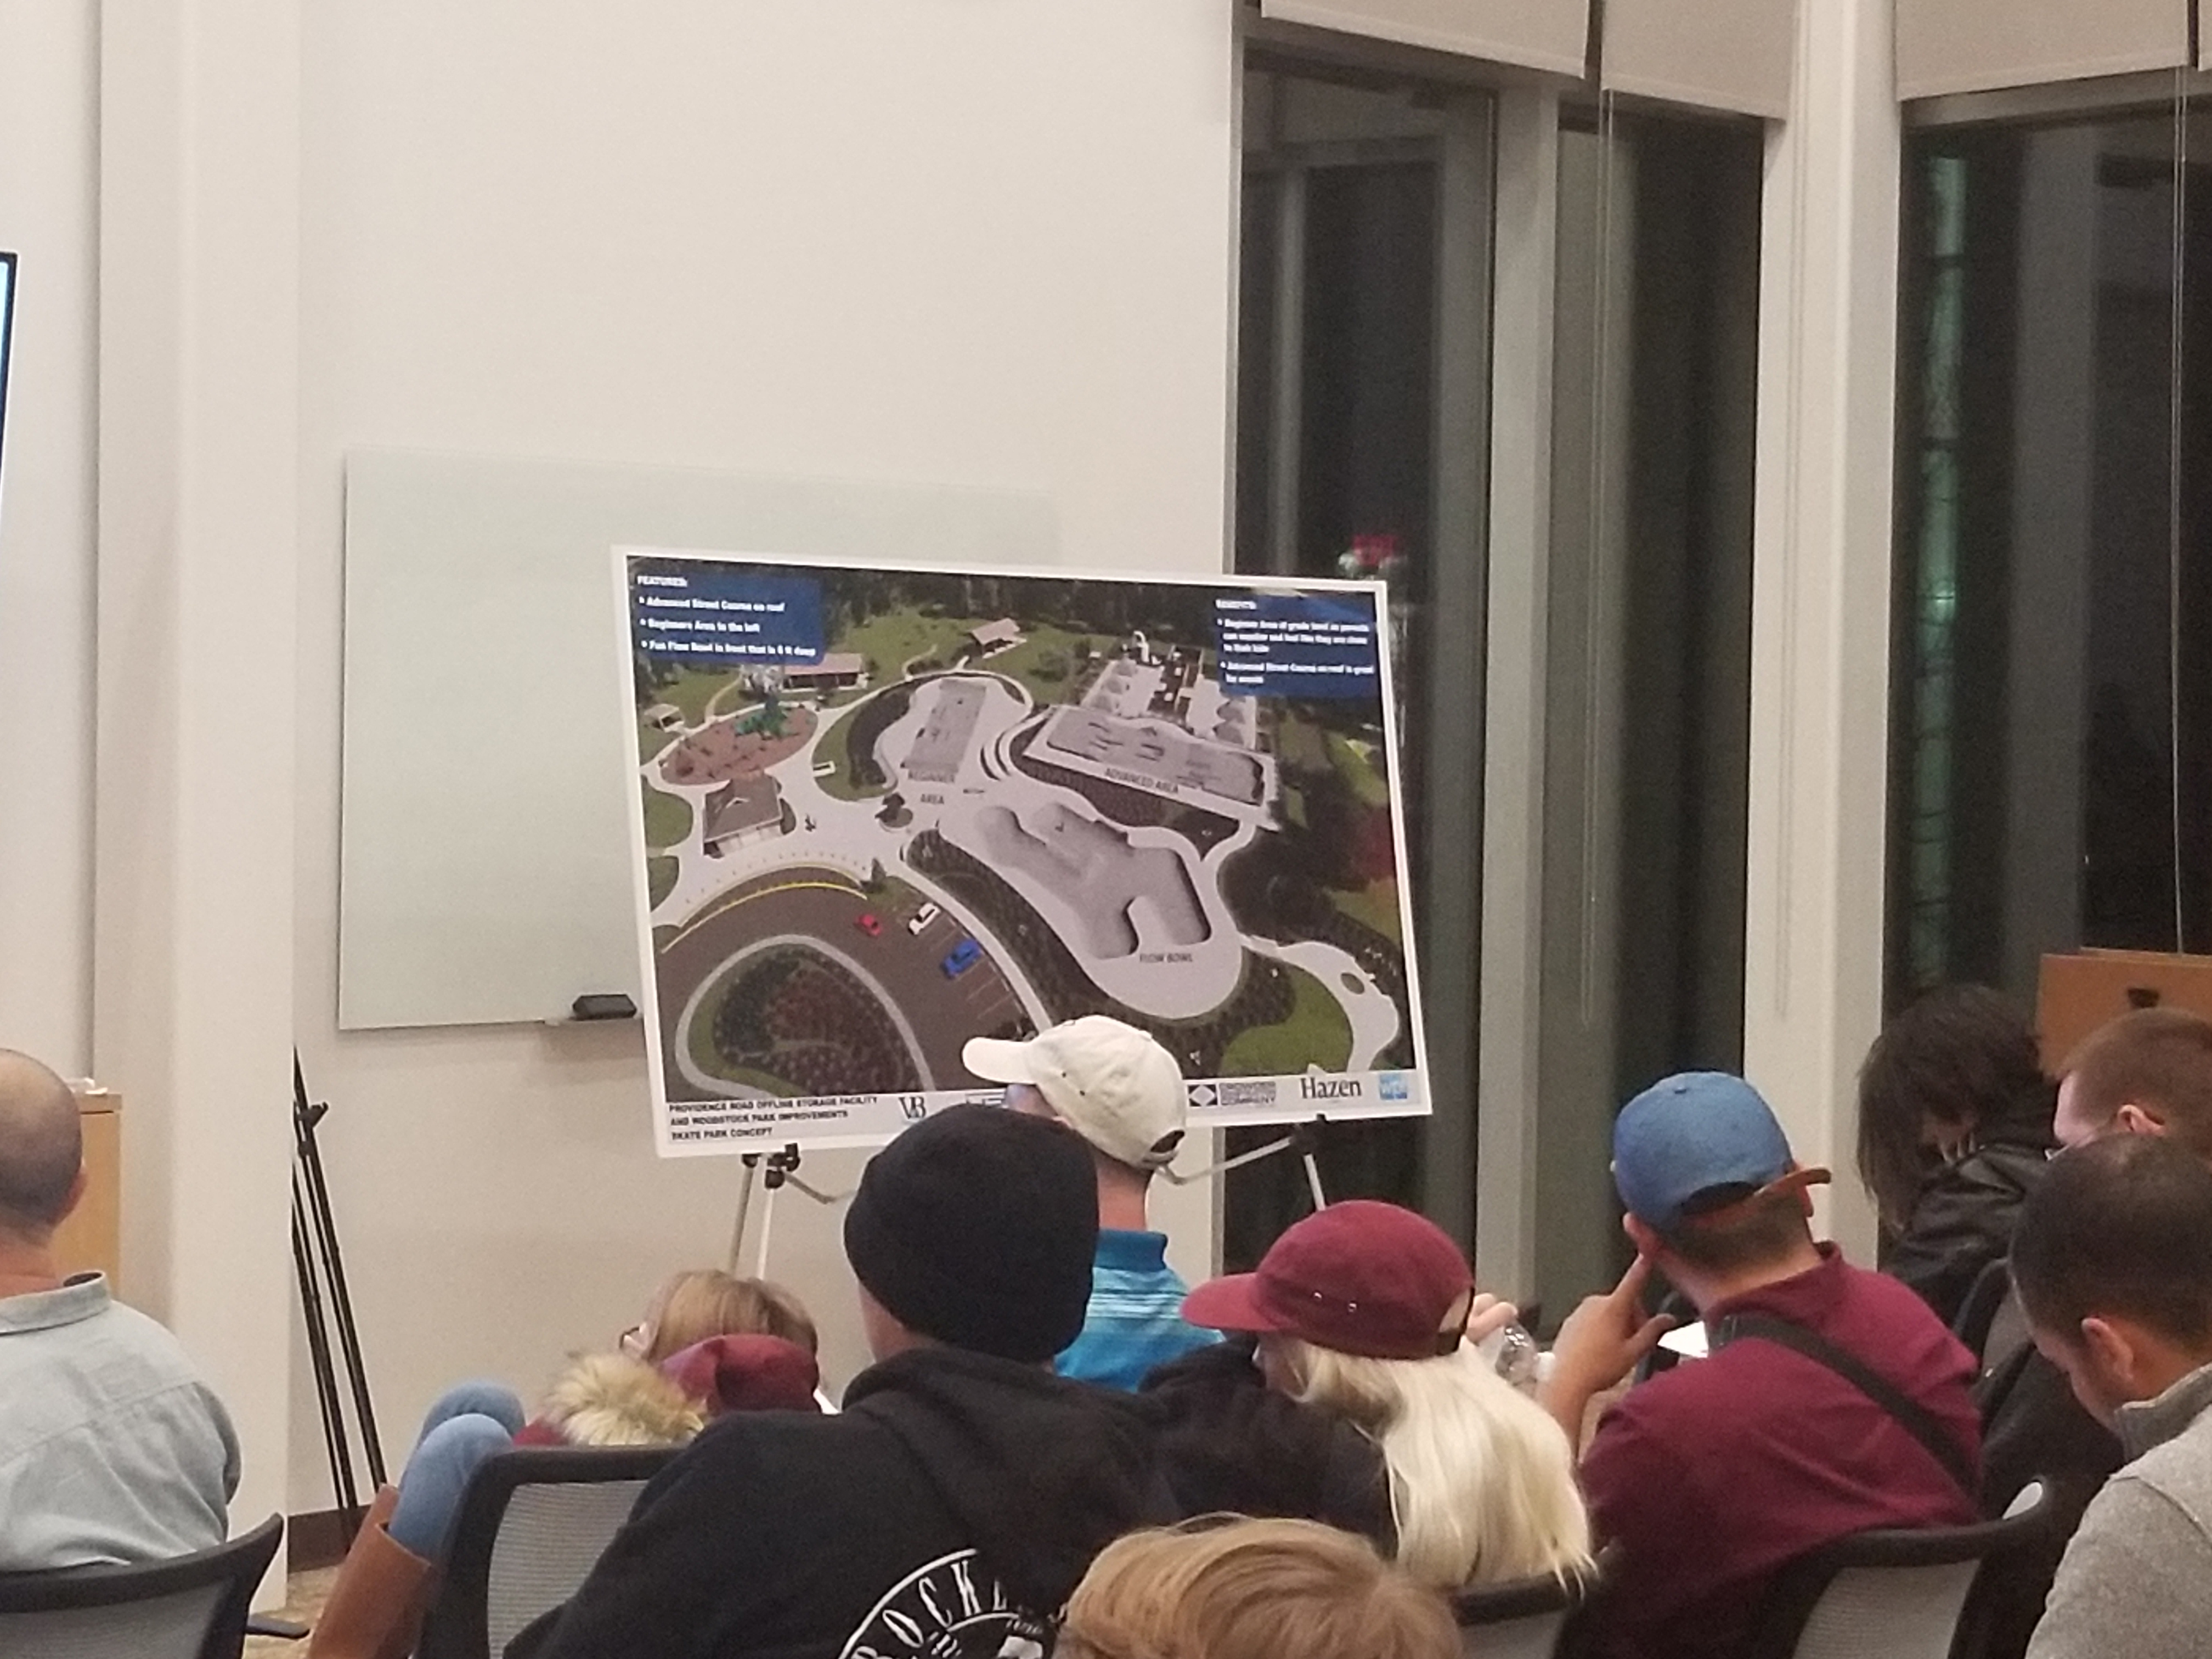 Woodstock Park Public Meeting.jpg